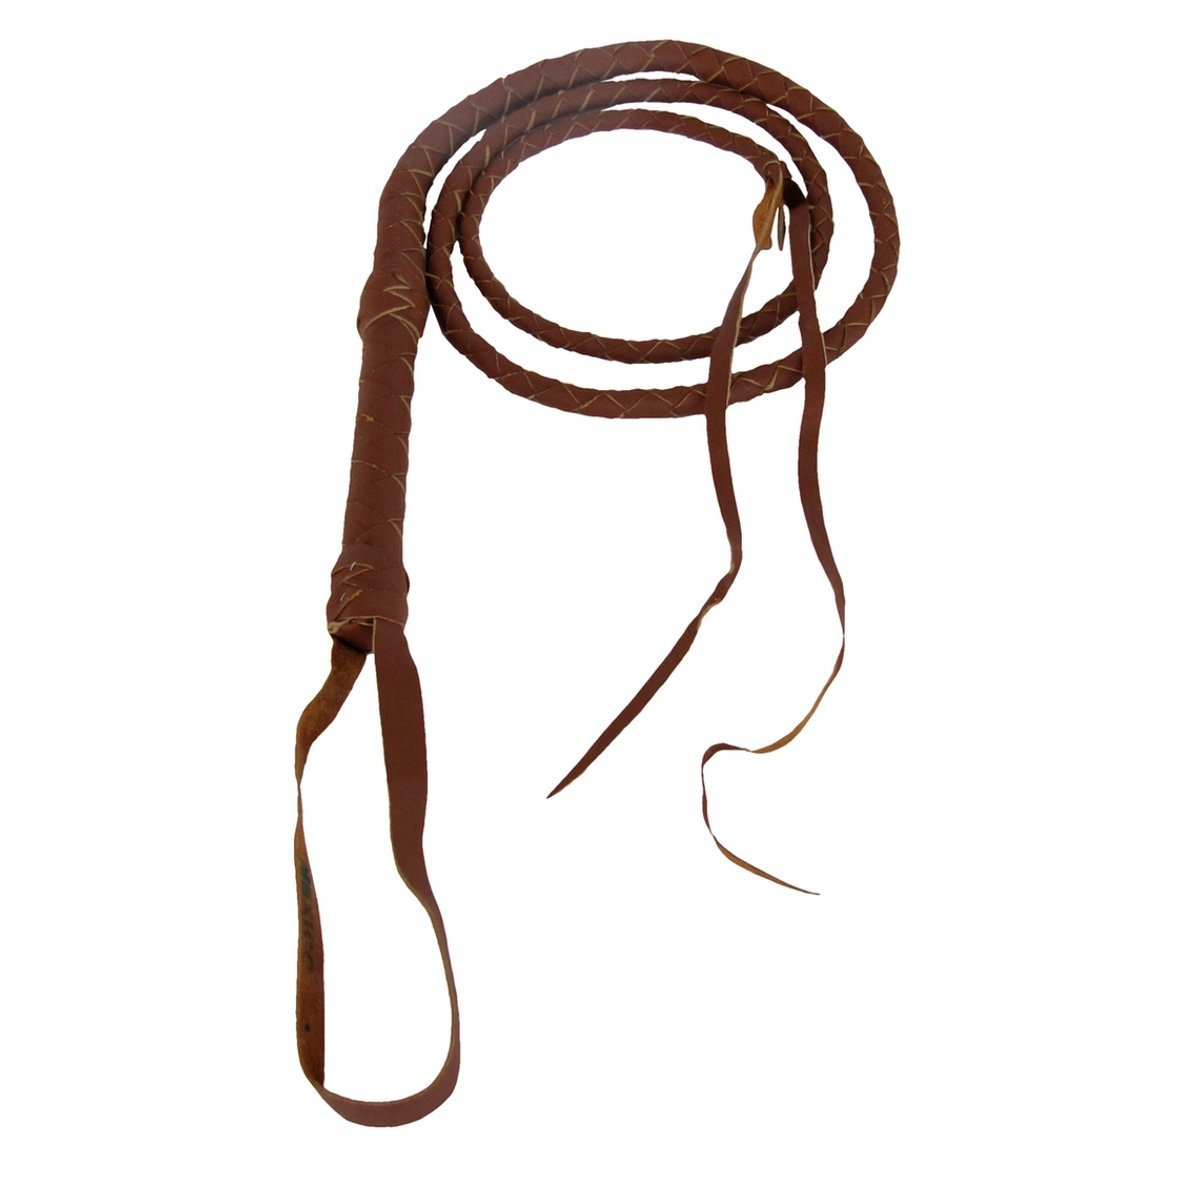 6 Ft. Quality 100% Leather Riding Bull Whip - Brown Tan